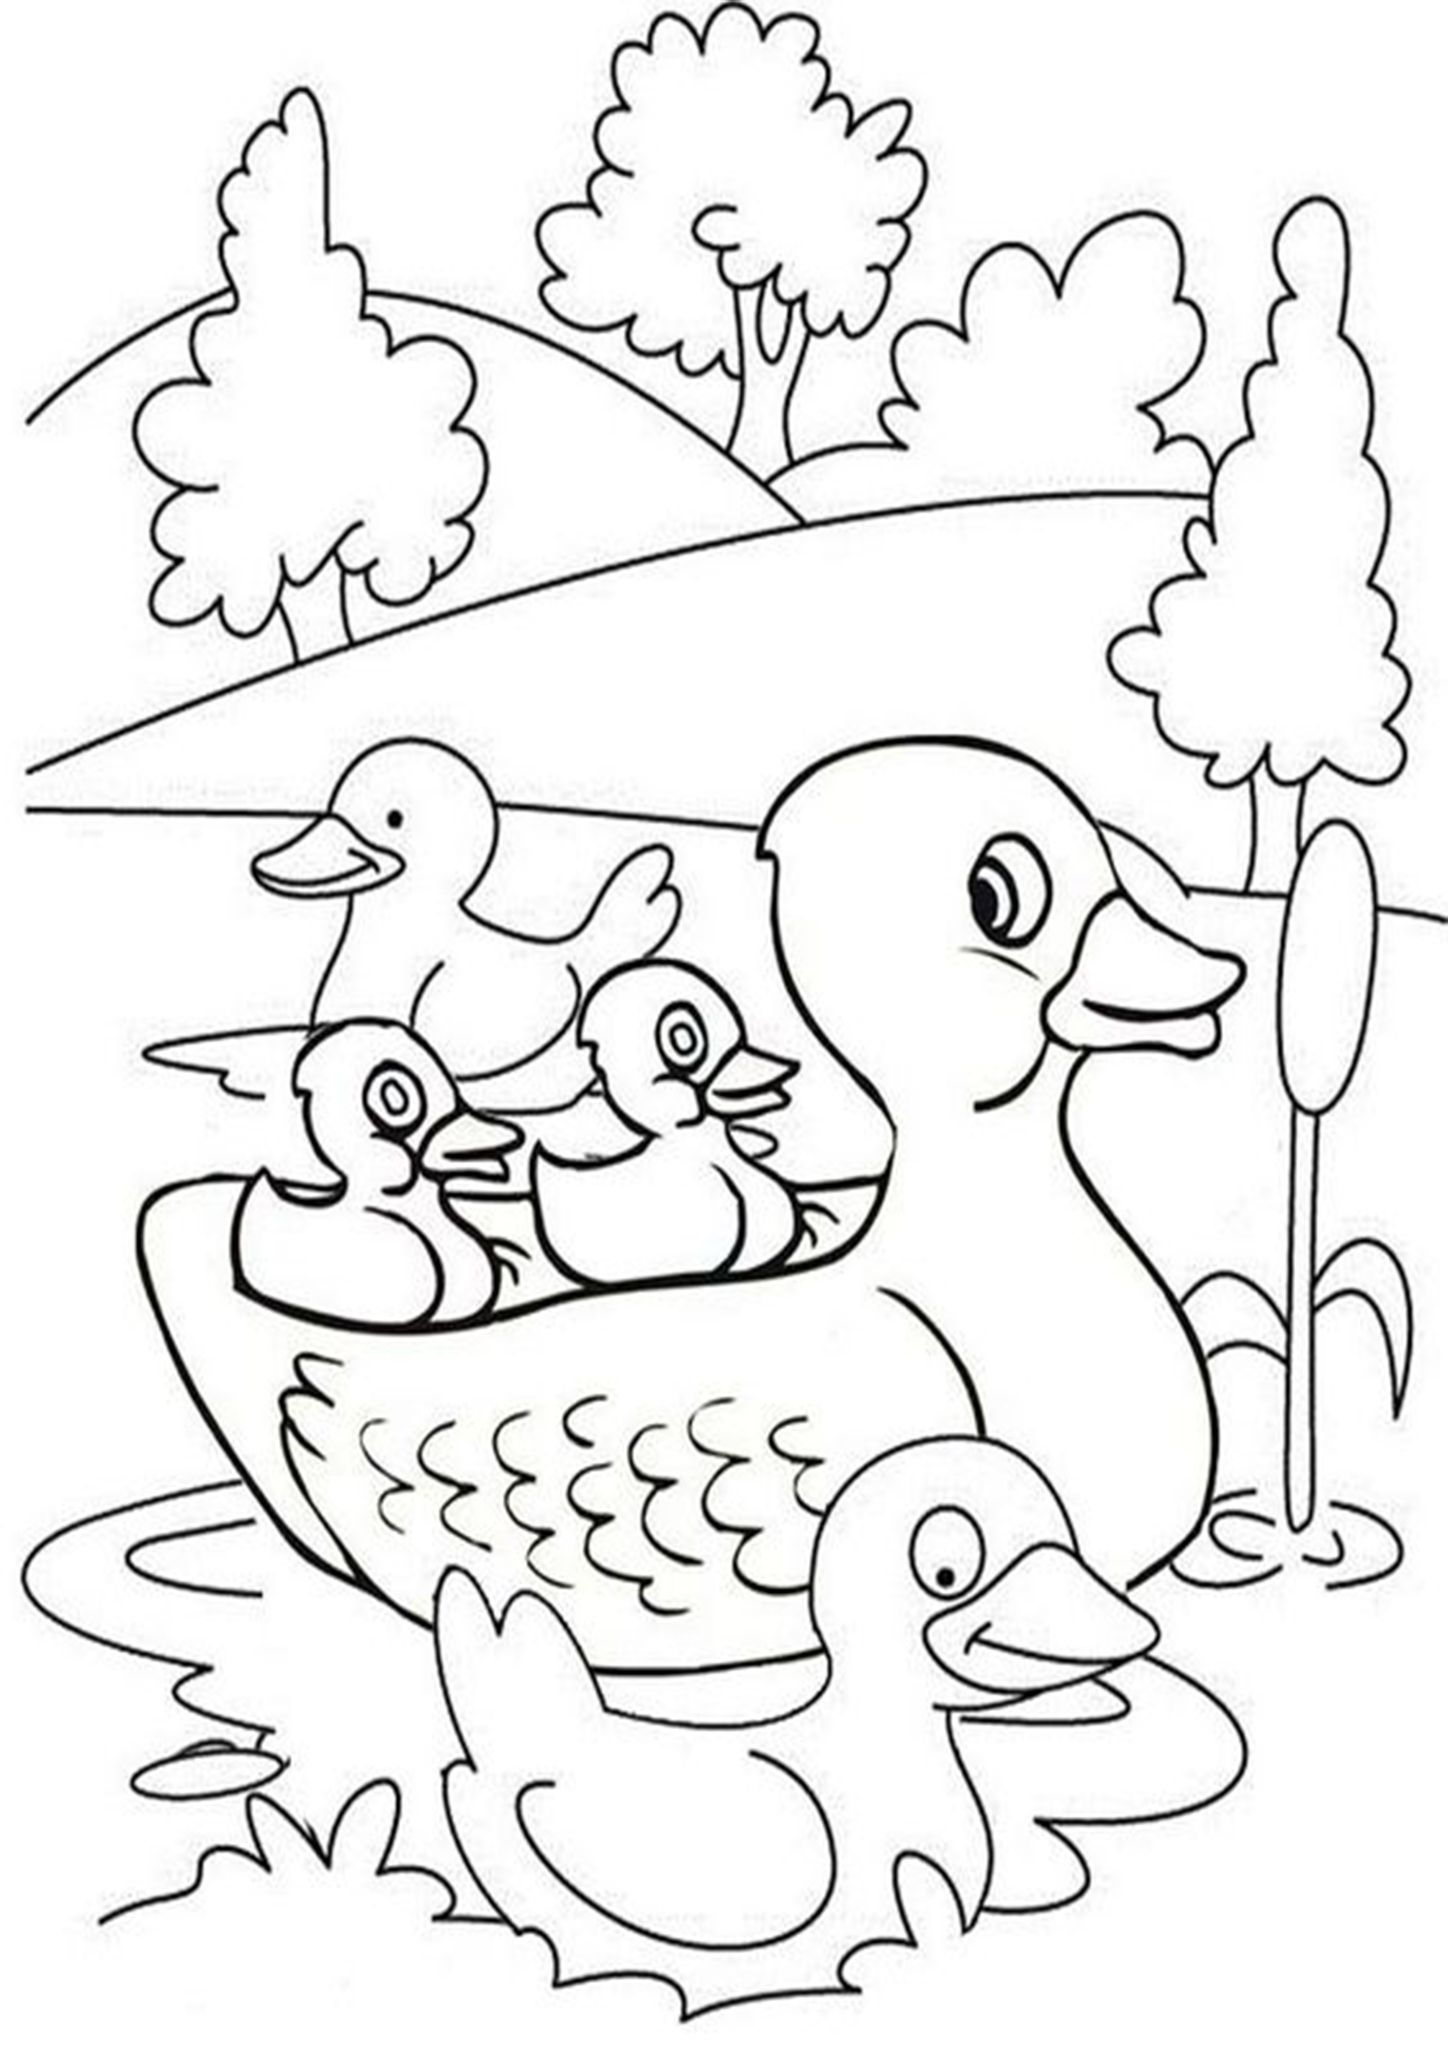 Free Easy To Print Duck Coloring Pages Coloring Pages Bird Coloring Pages Printable Coloring Pages